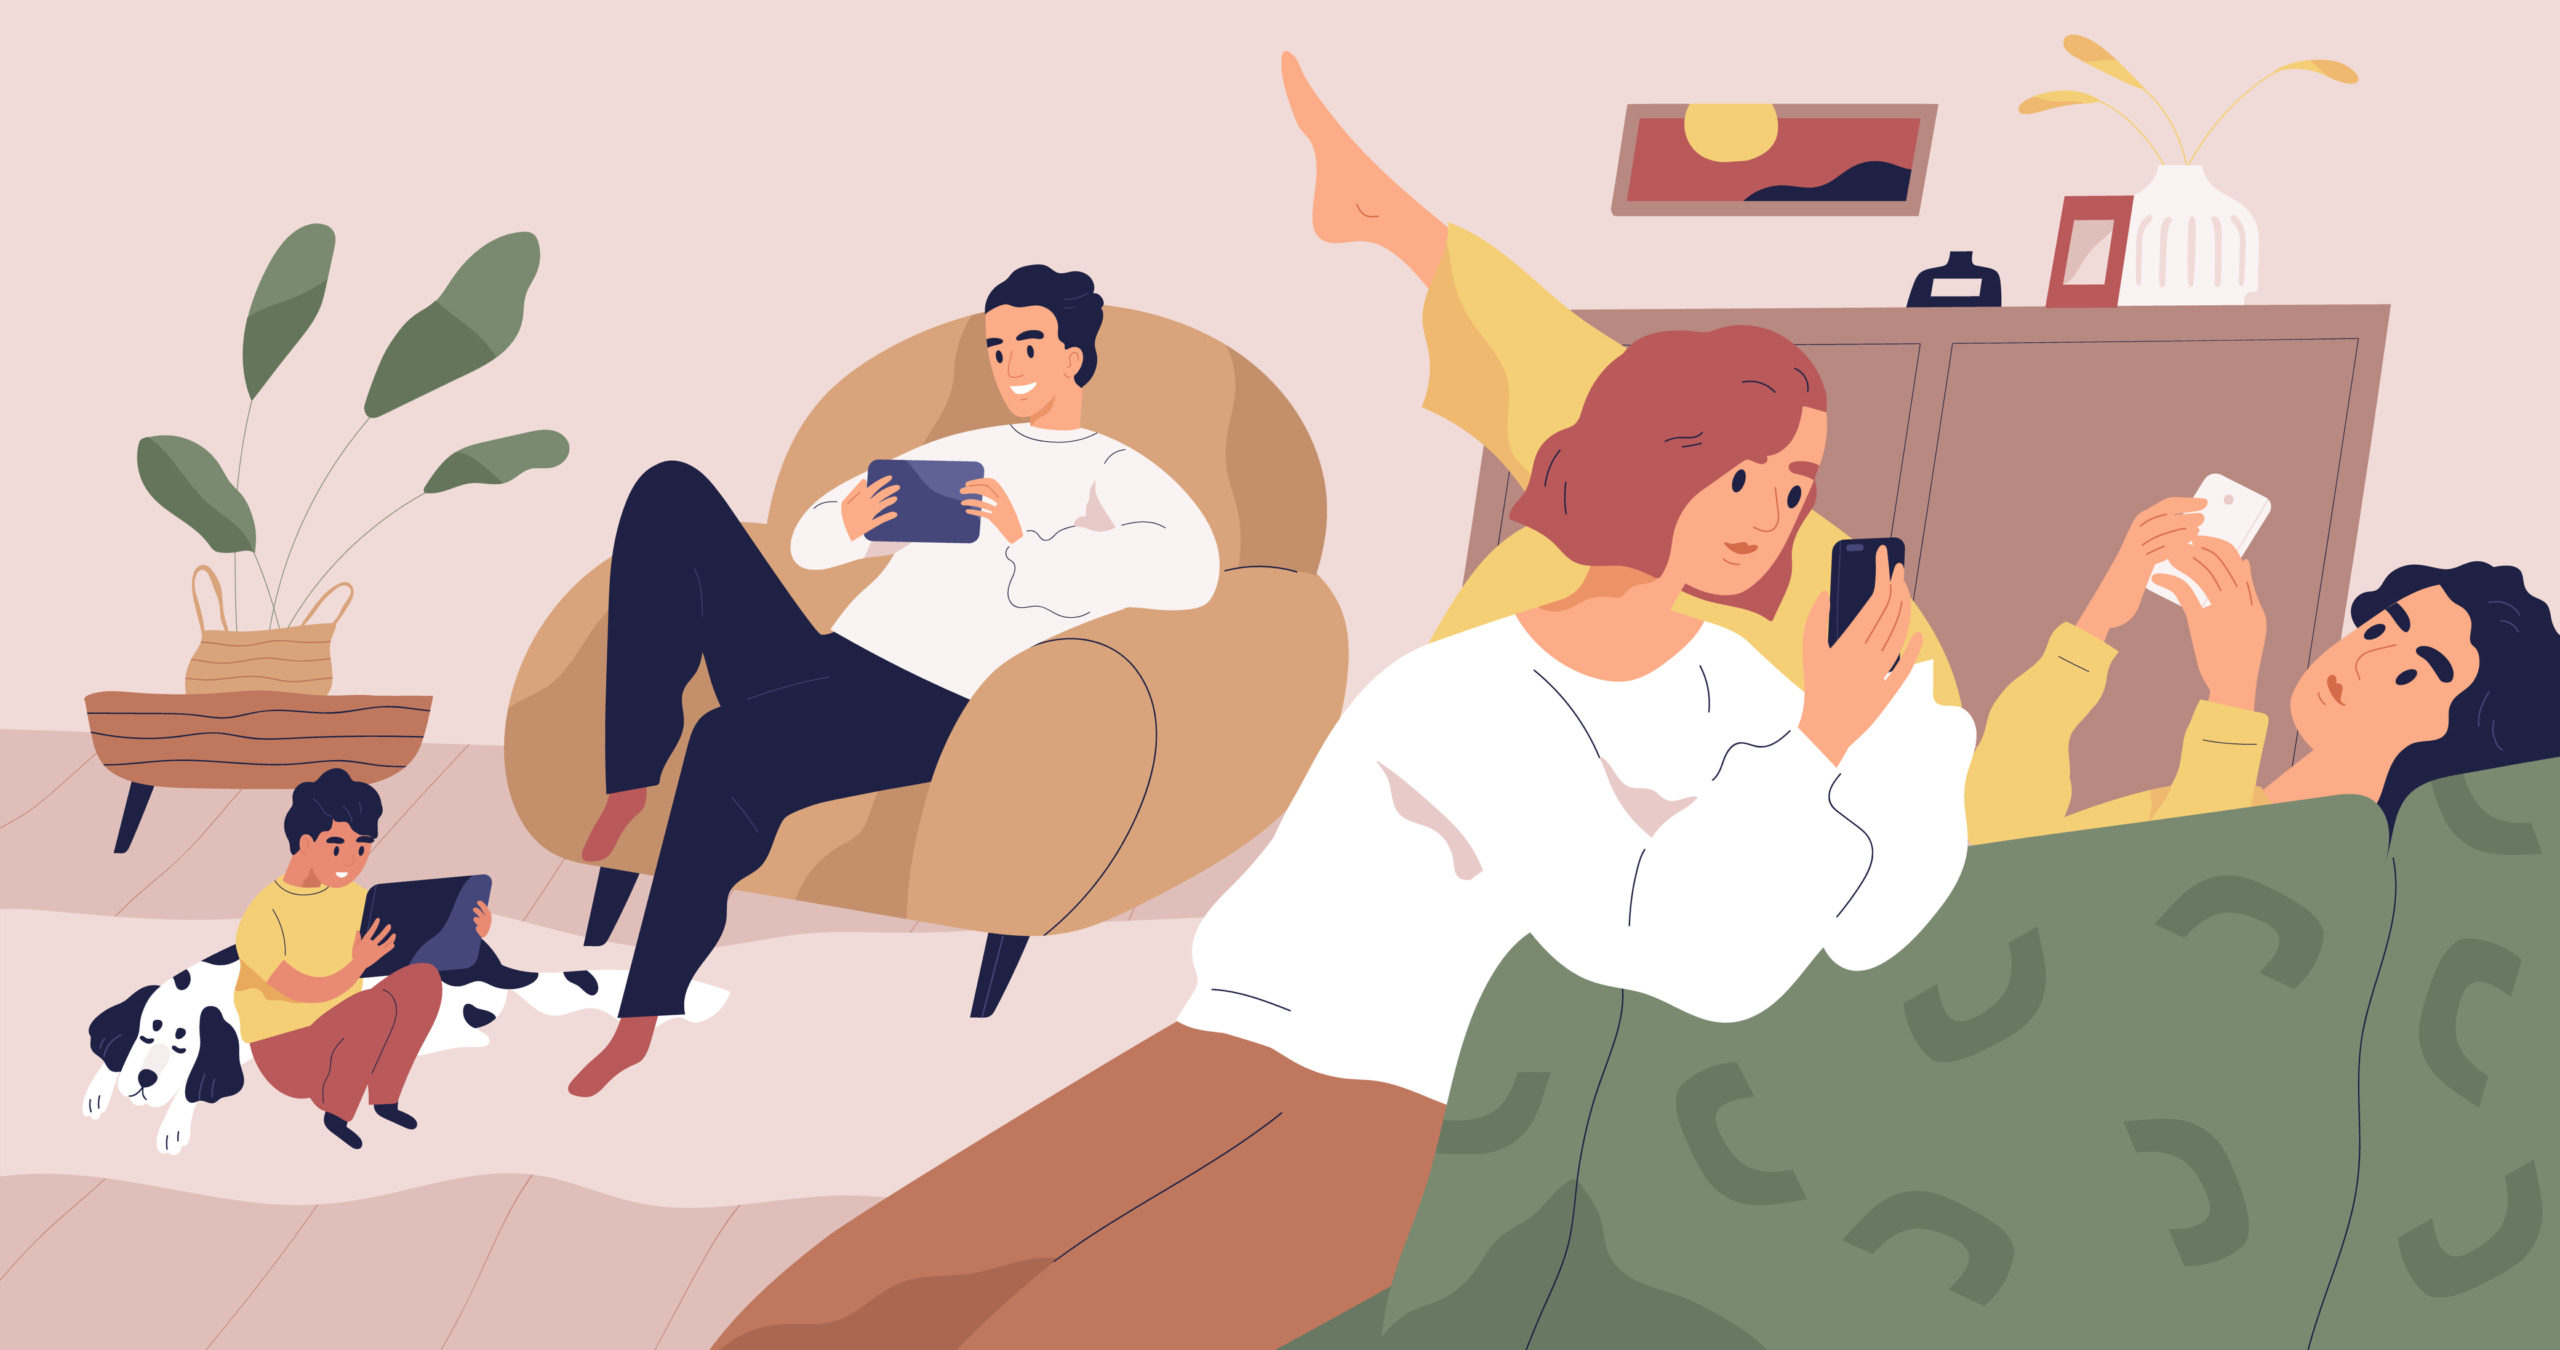 people on phones in an apartment